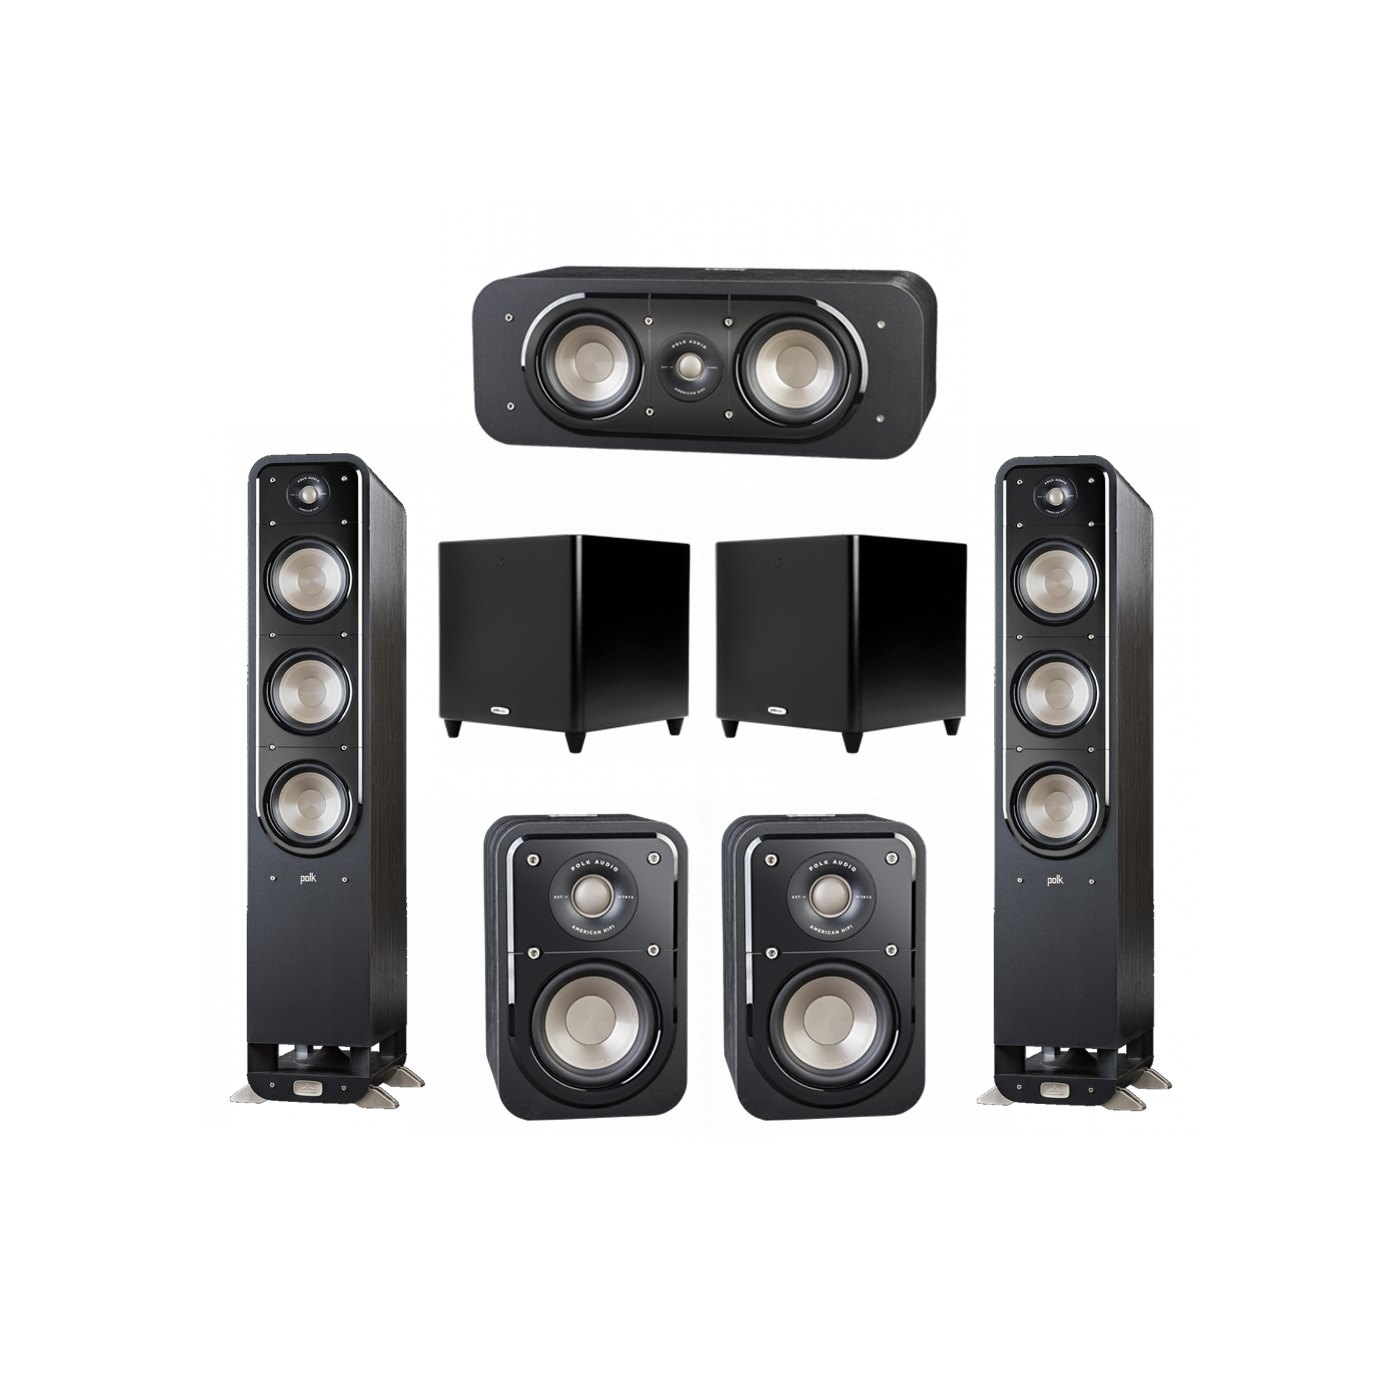 Polk Audio Signature 5.2 System with 2 S60 Tower Speaker, 1 Polk S30 Center Speaker, 2 Polk S10 Surround Speaker, 2 Polk DSW PRO 660 wi Subwoofer